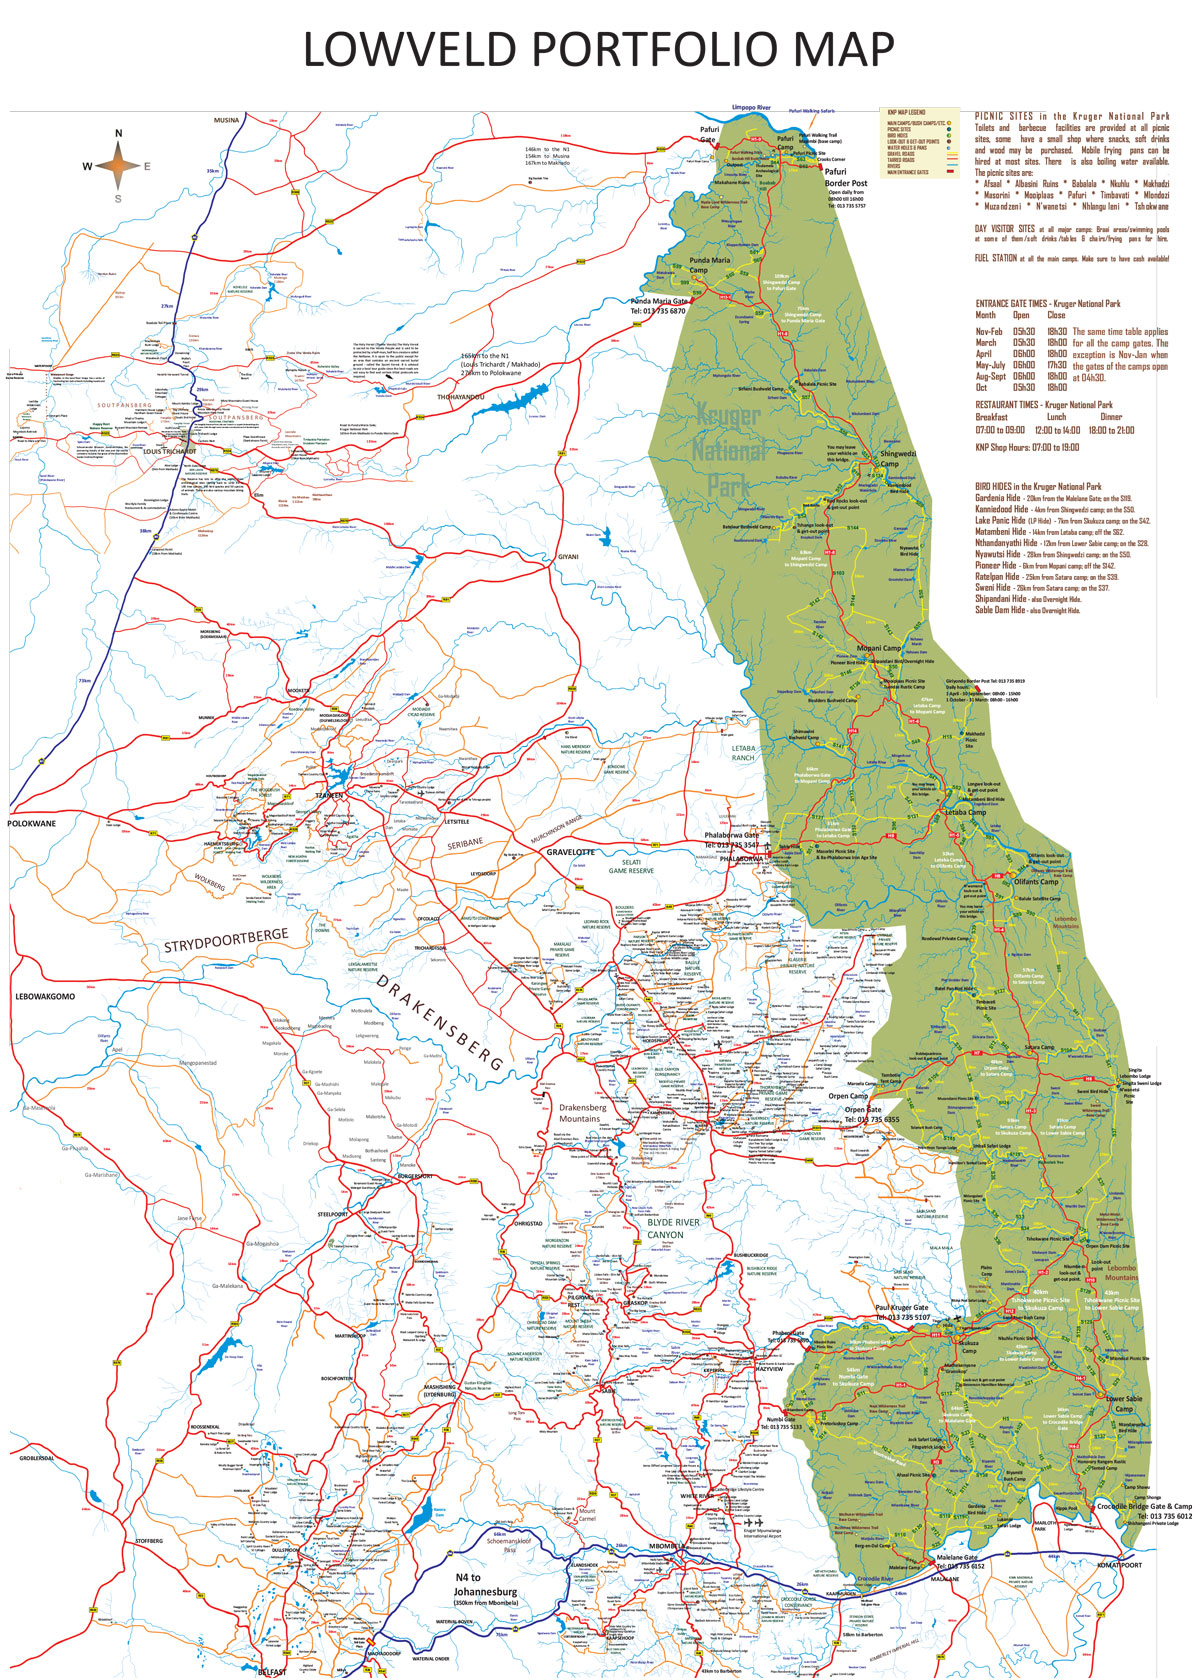 Lowveld Portfolio Map | Hoedspruit.net on